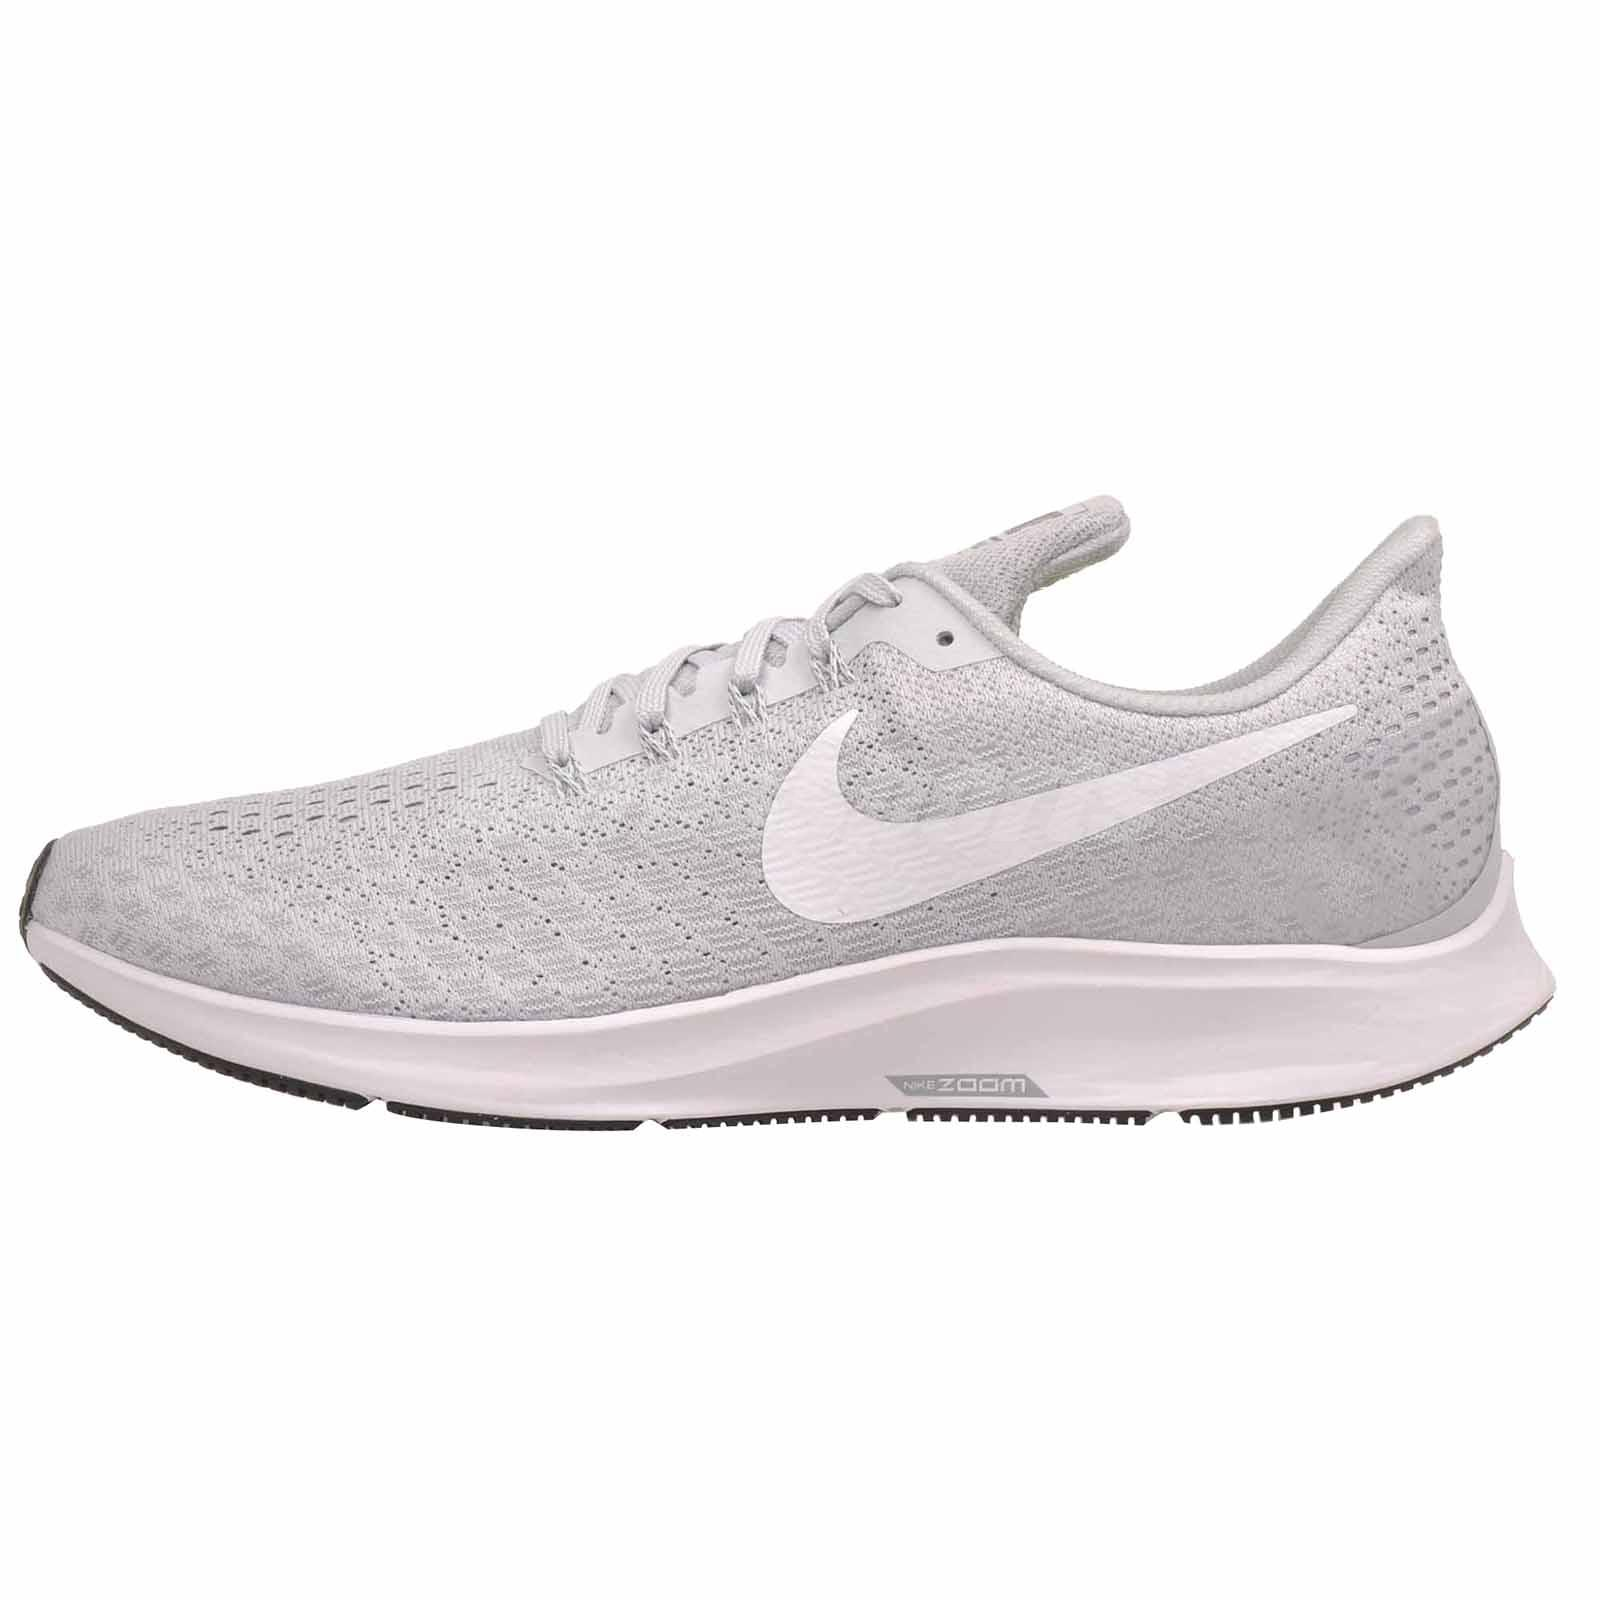 official photos 89aba af929 Details about Nike Air Zoom Pegasus 35 TB Mens Team Running Shoes NWOB  Platinum AO3905-002